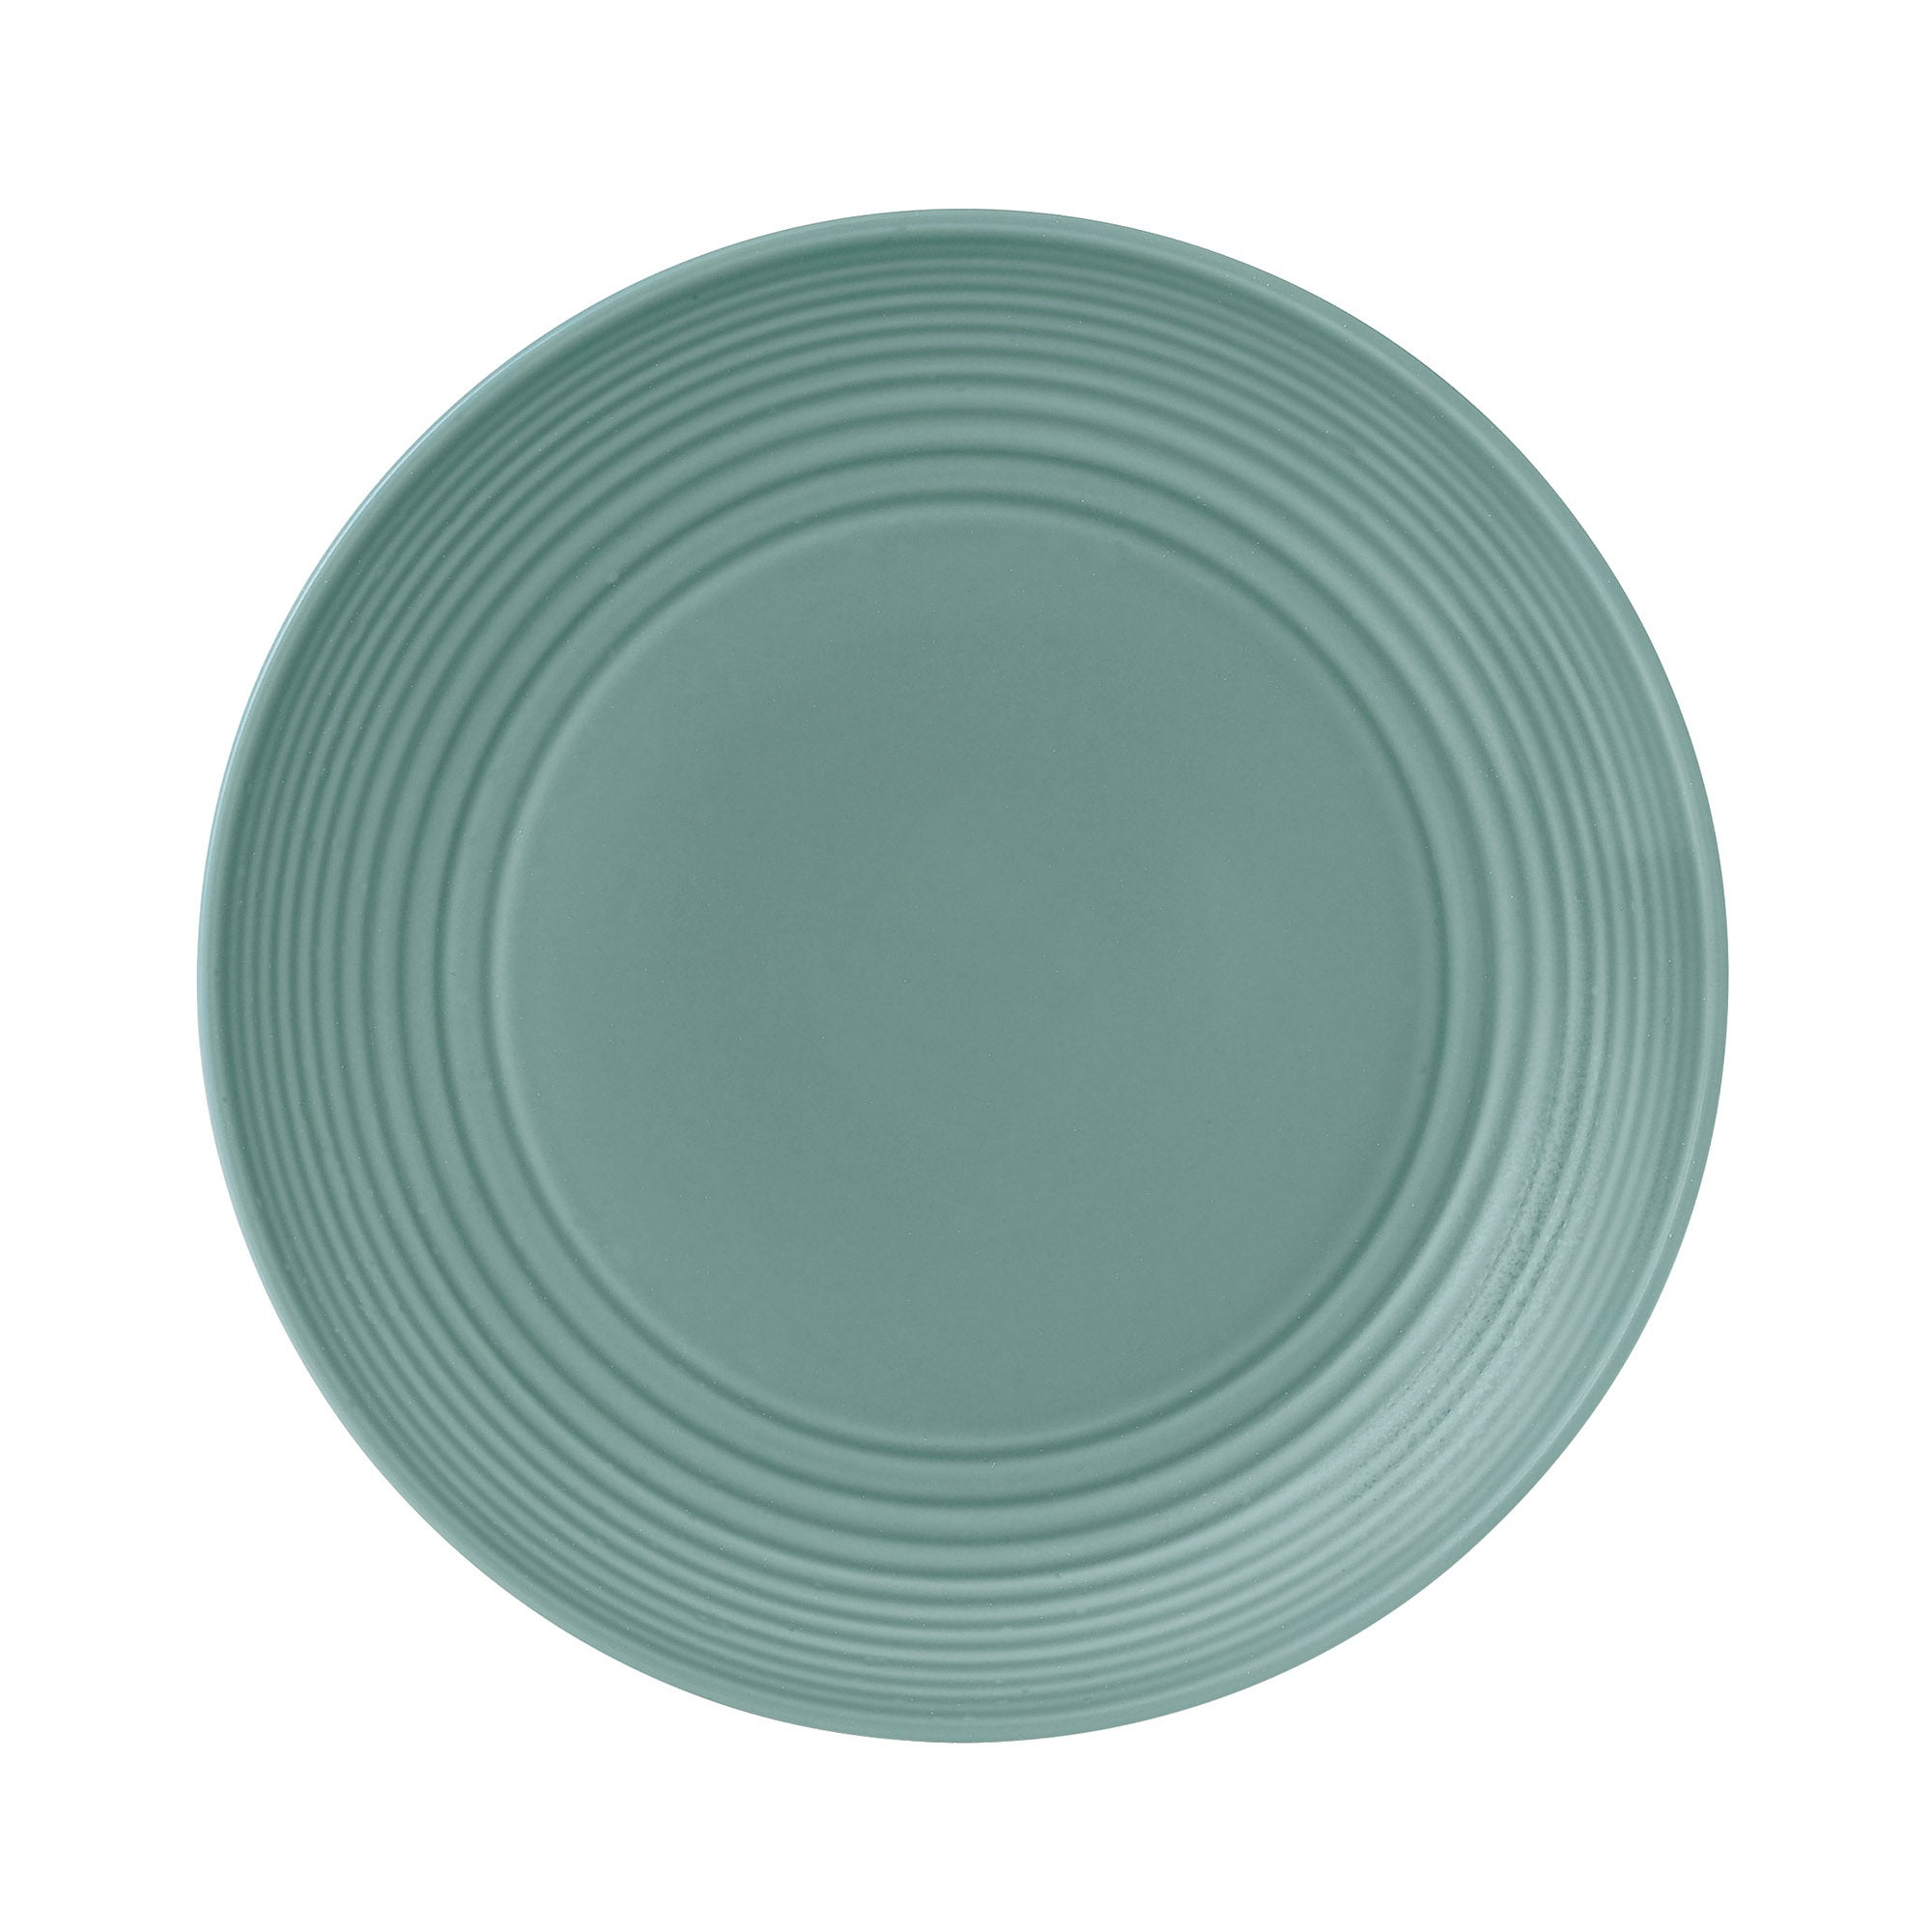 Teal Gordon Ramsay Maze Collection Side Plate